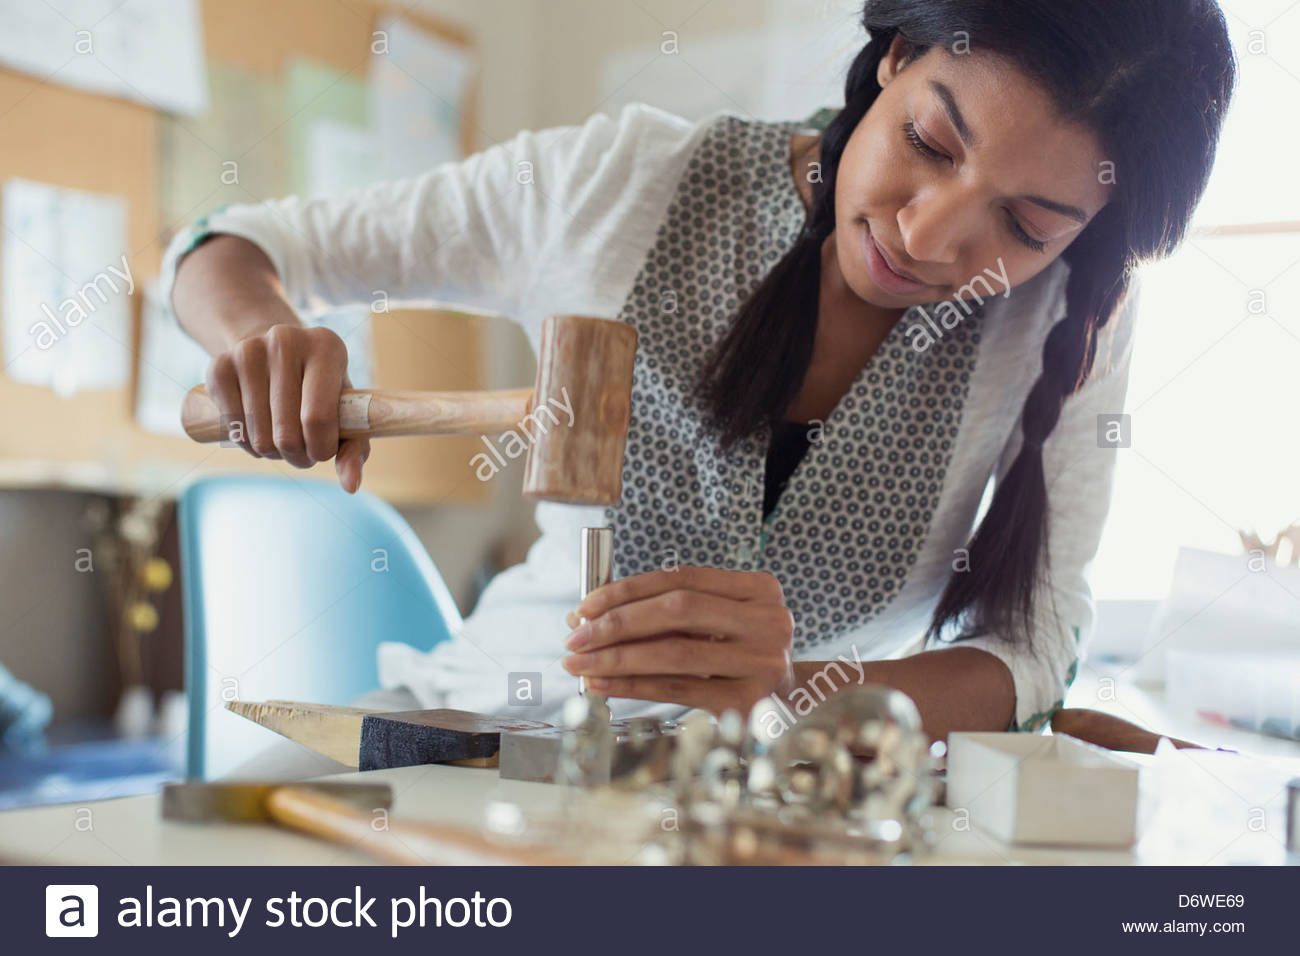 Mid adult female artist making jewelry at desk - Stock Image